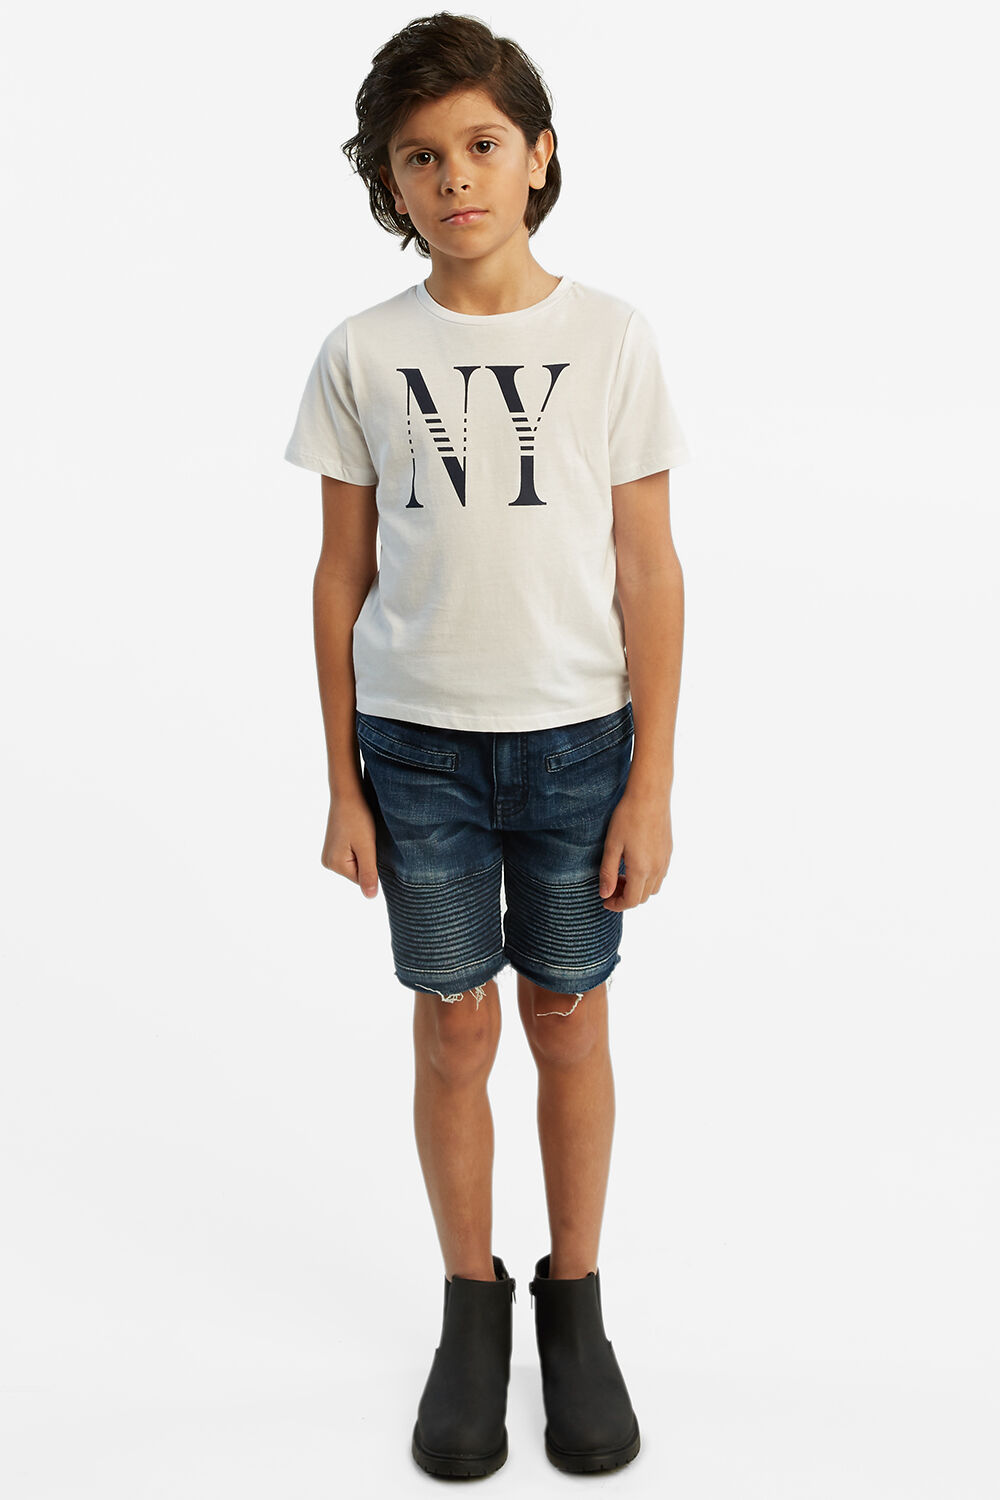 NEW YORK TEE in colour BRIGHT WHITE